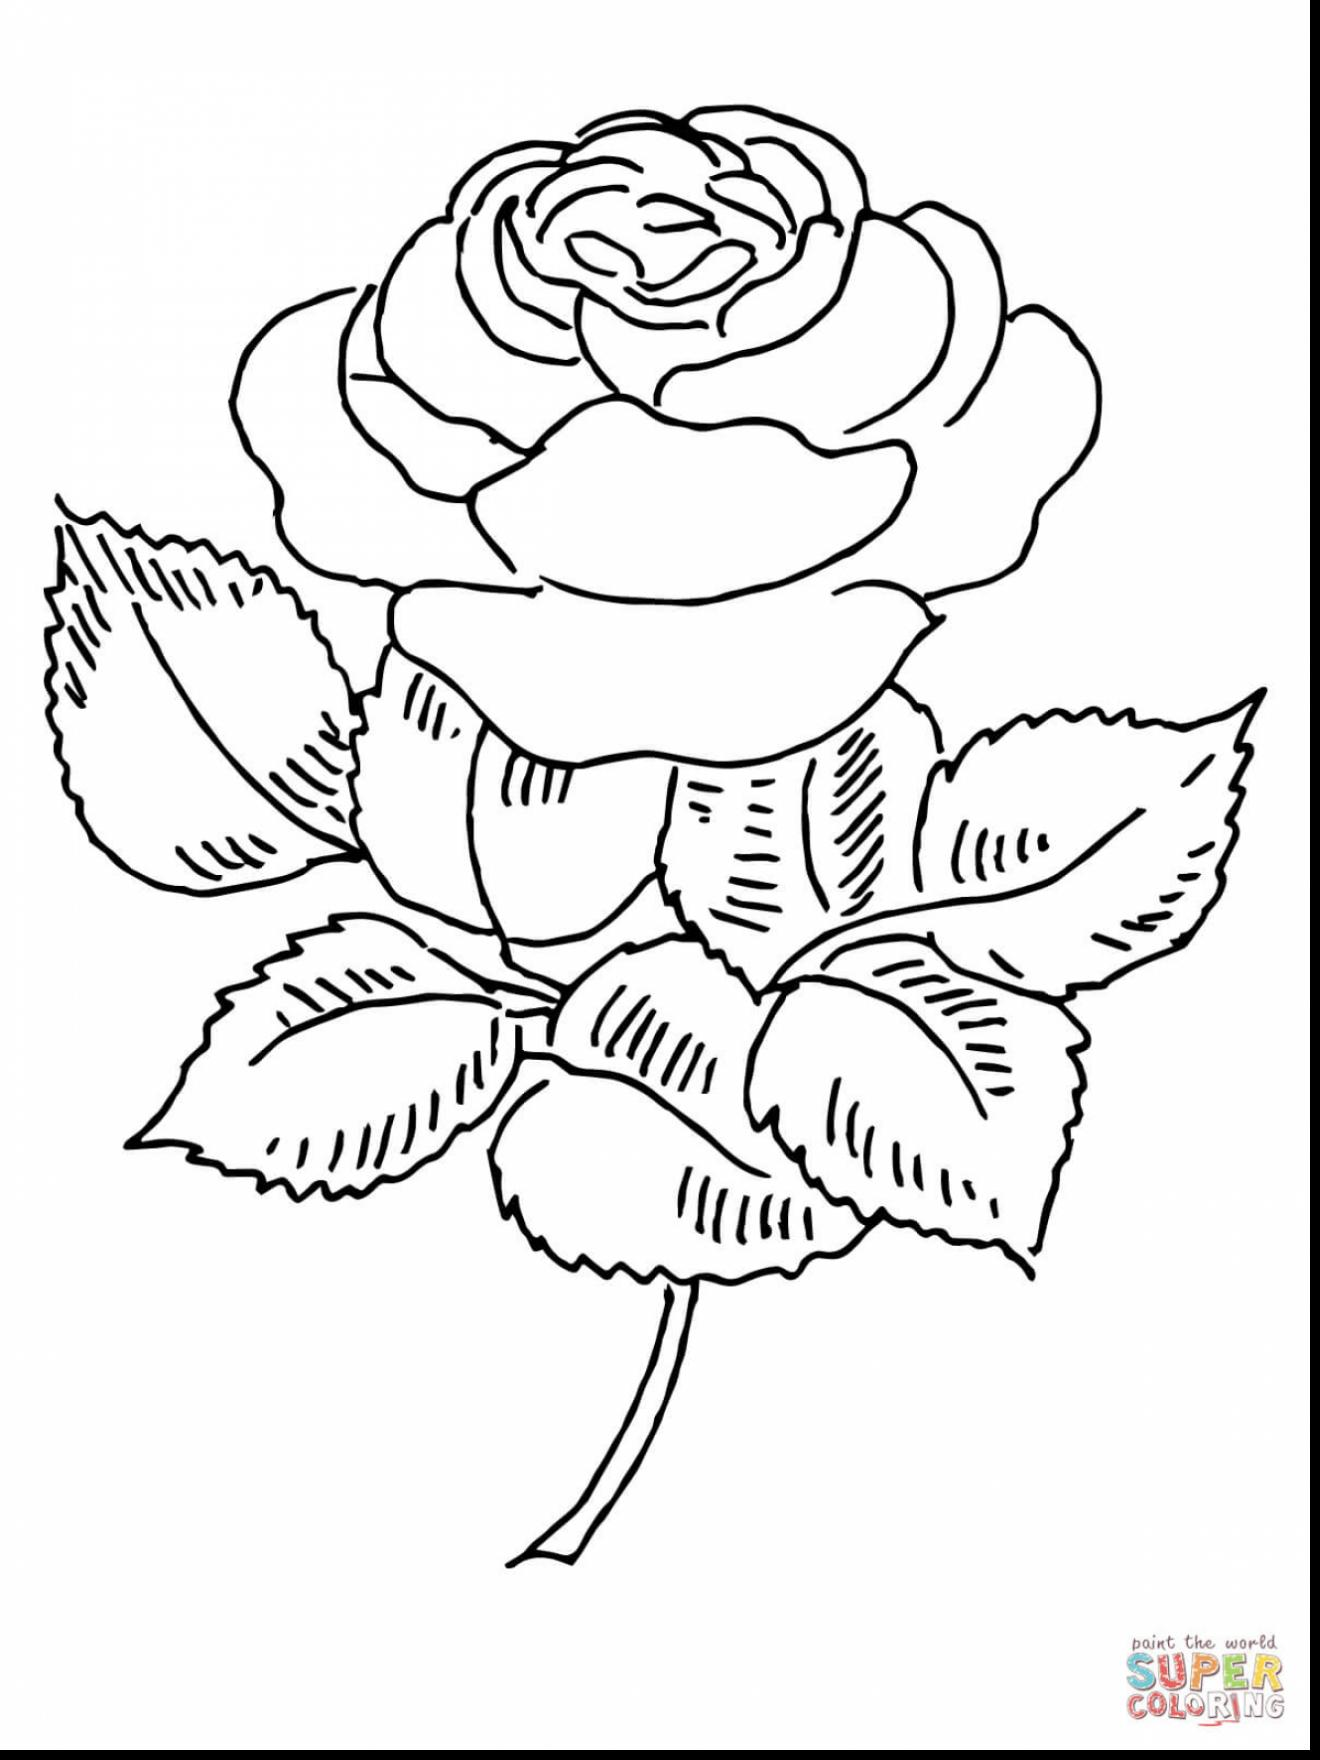 roses coloring rose printable instant download coloring page color with roses coloring